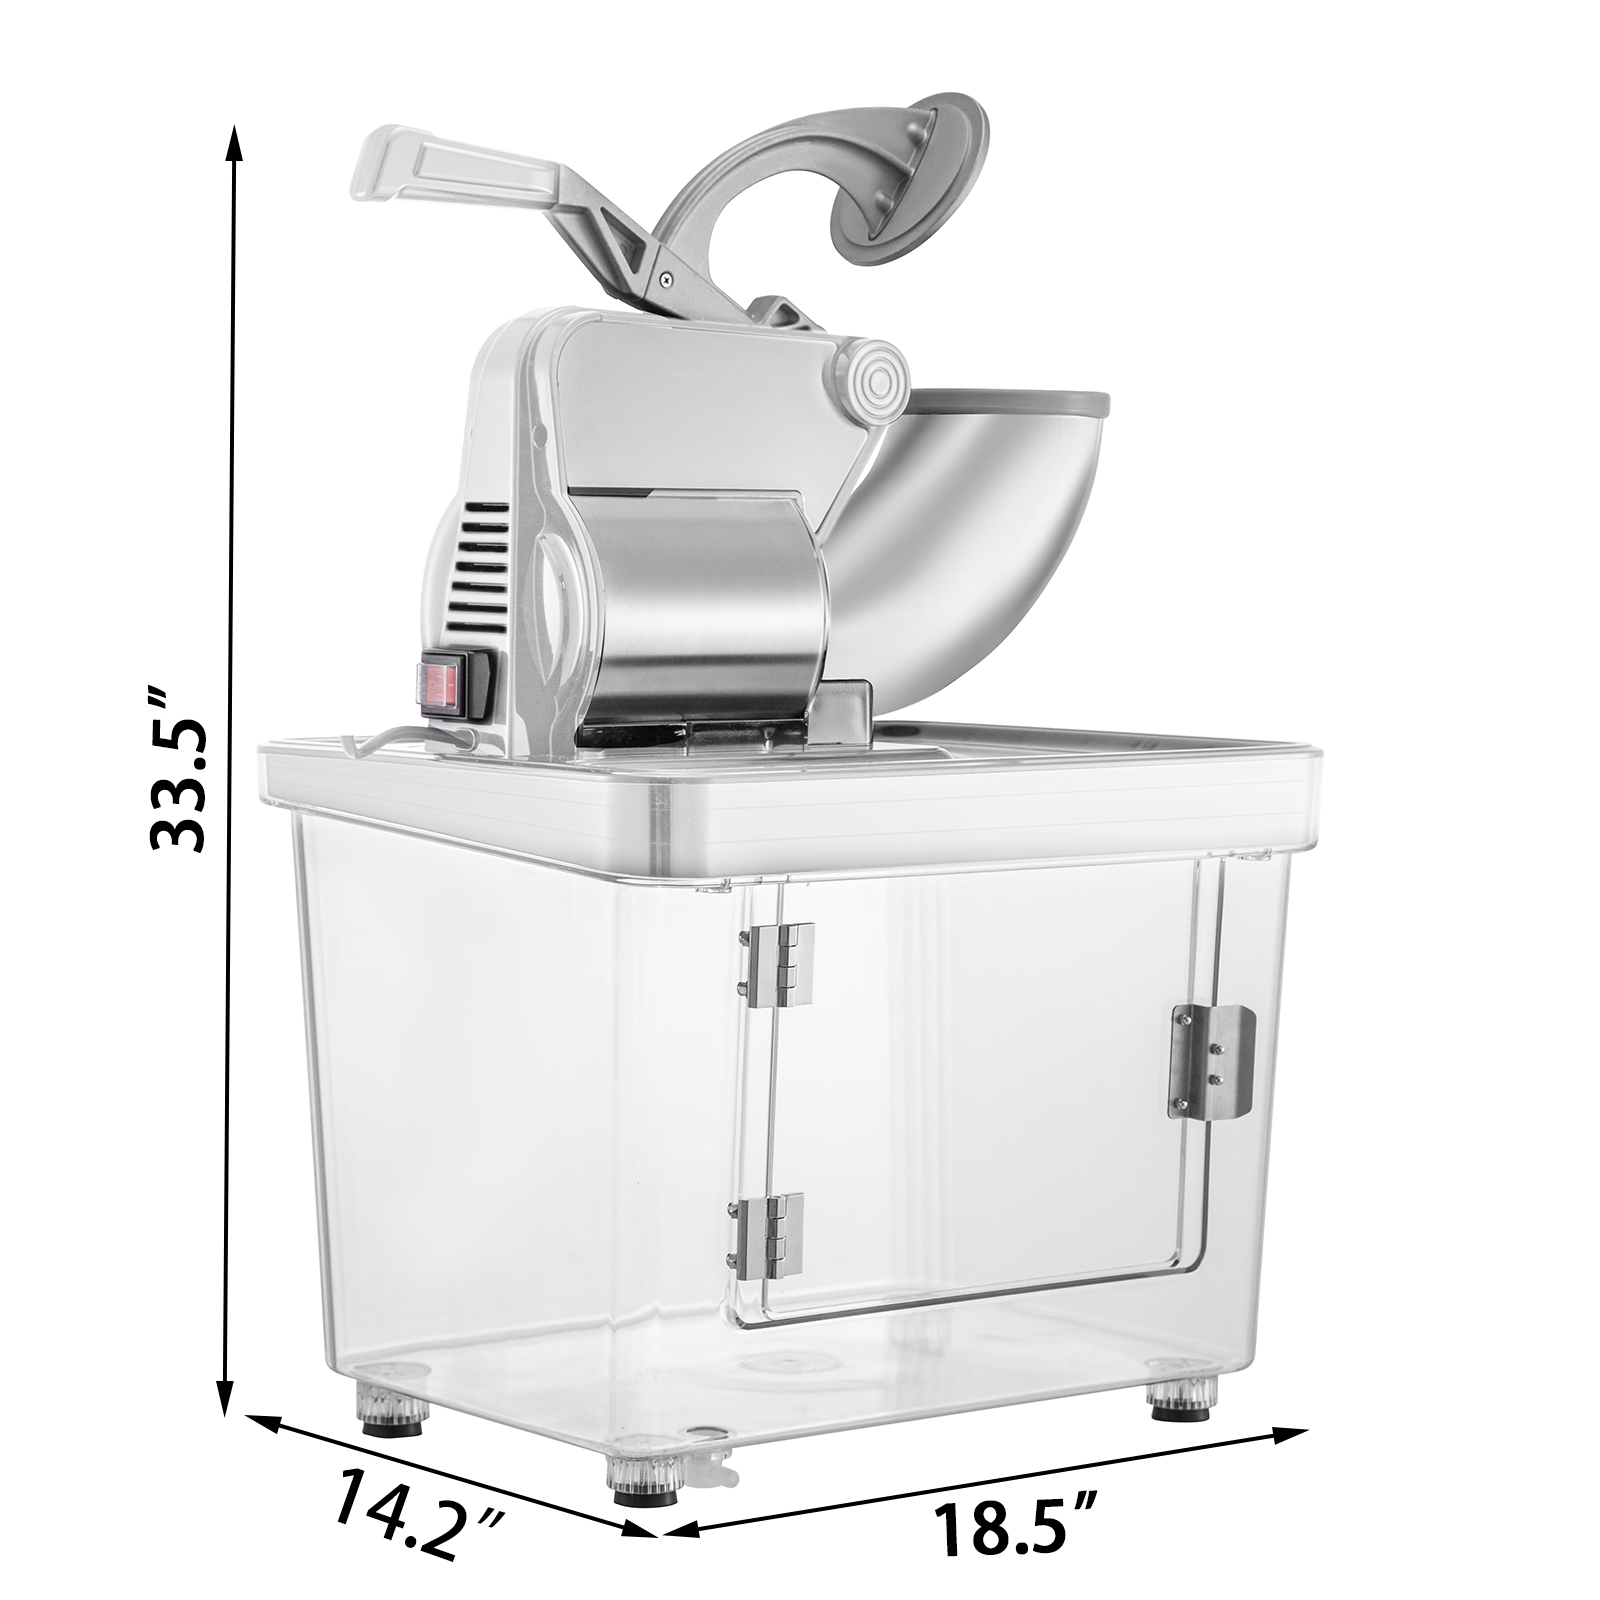 Snow Cone Maker Round Ice Shaver Stainless Steel for Home Kitchen